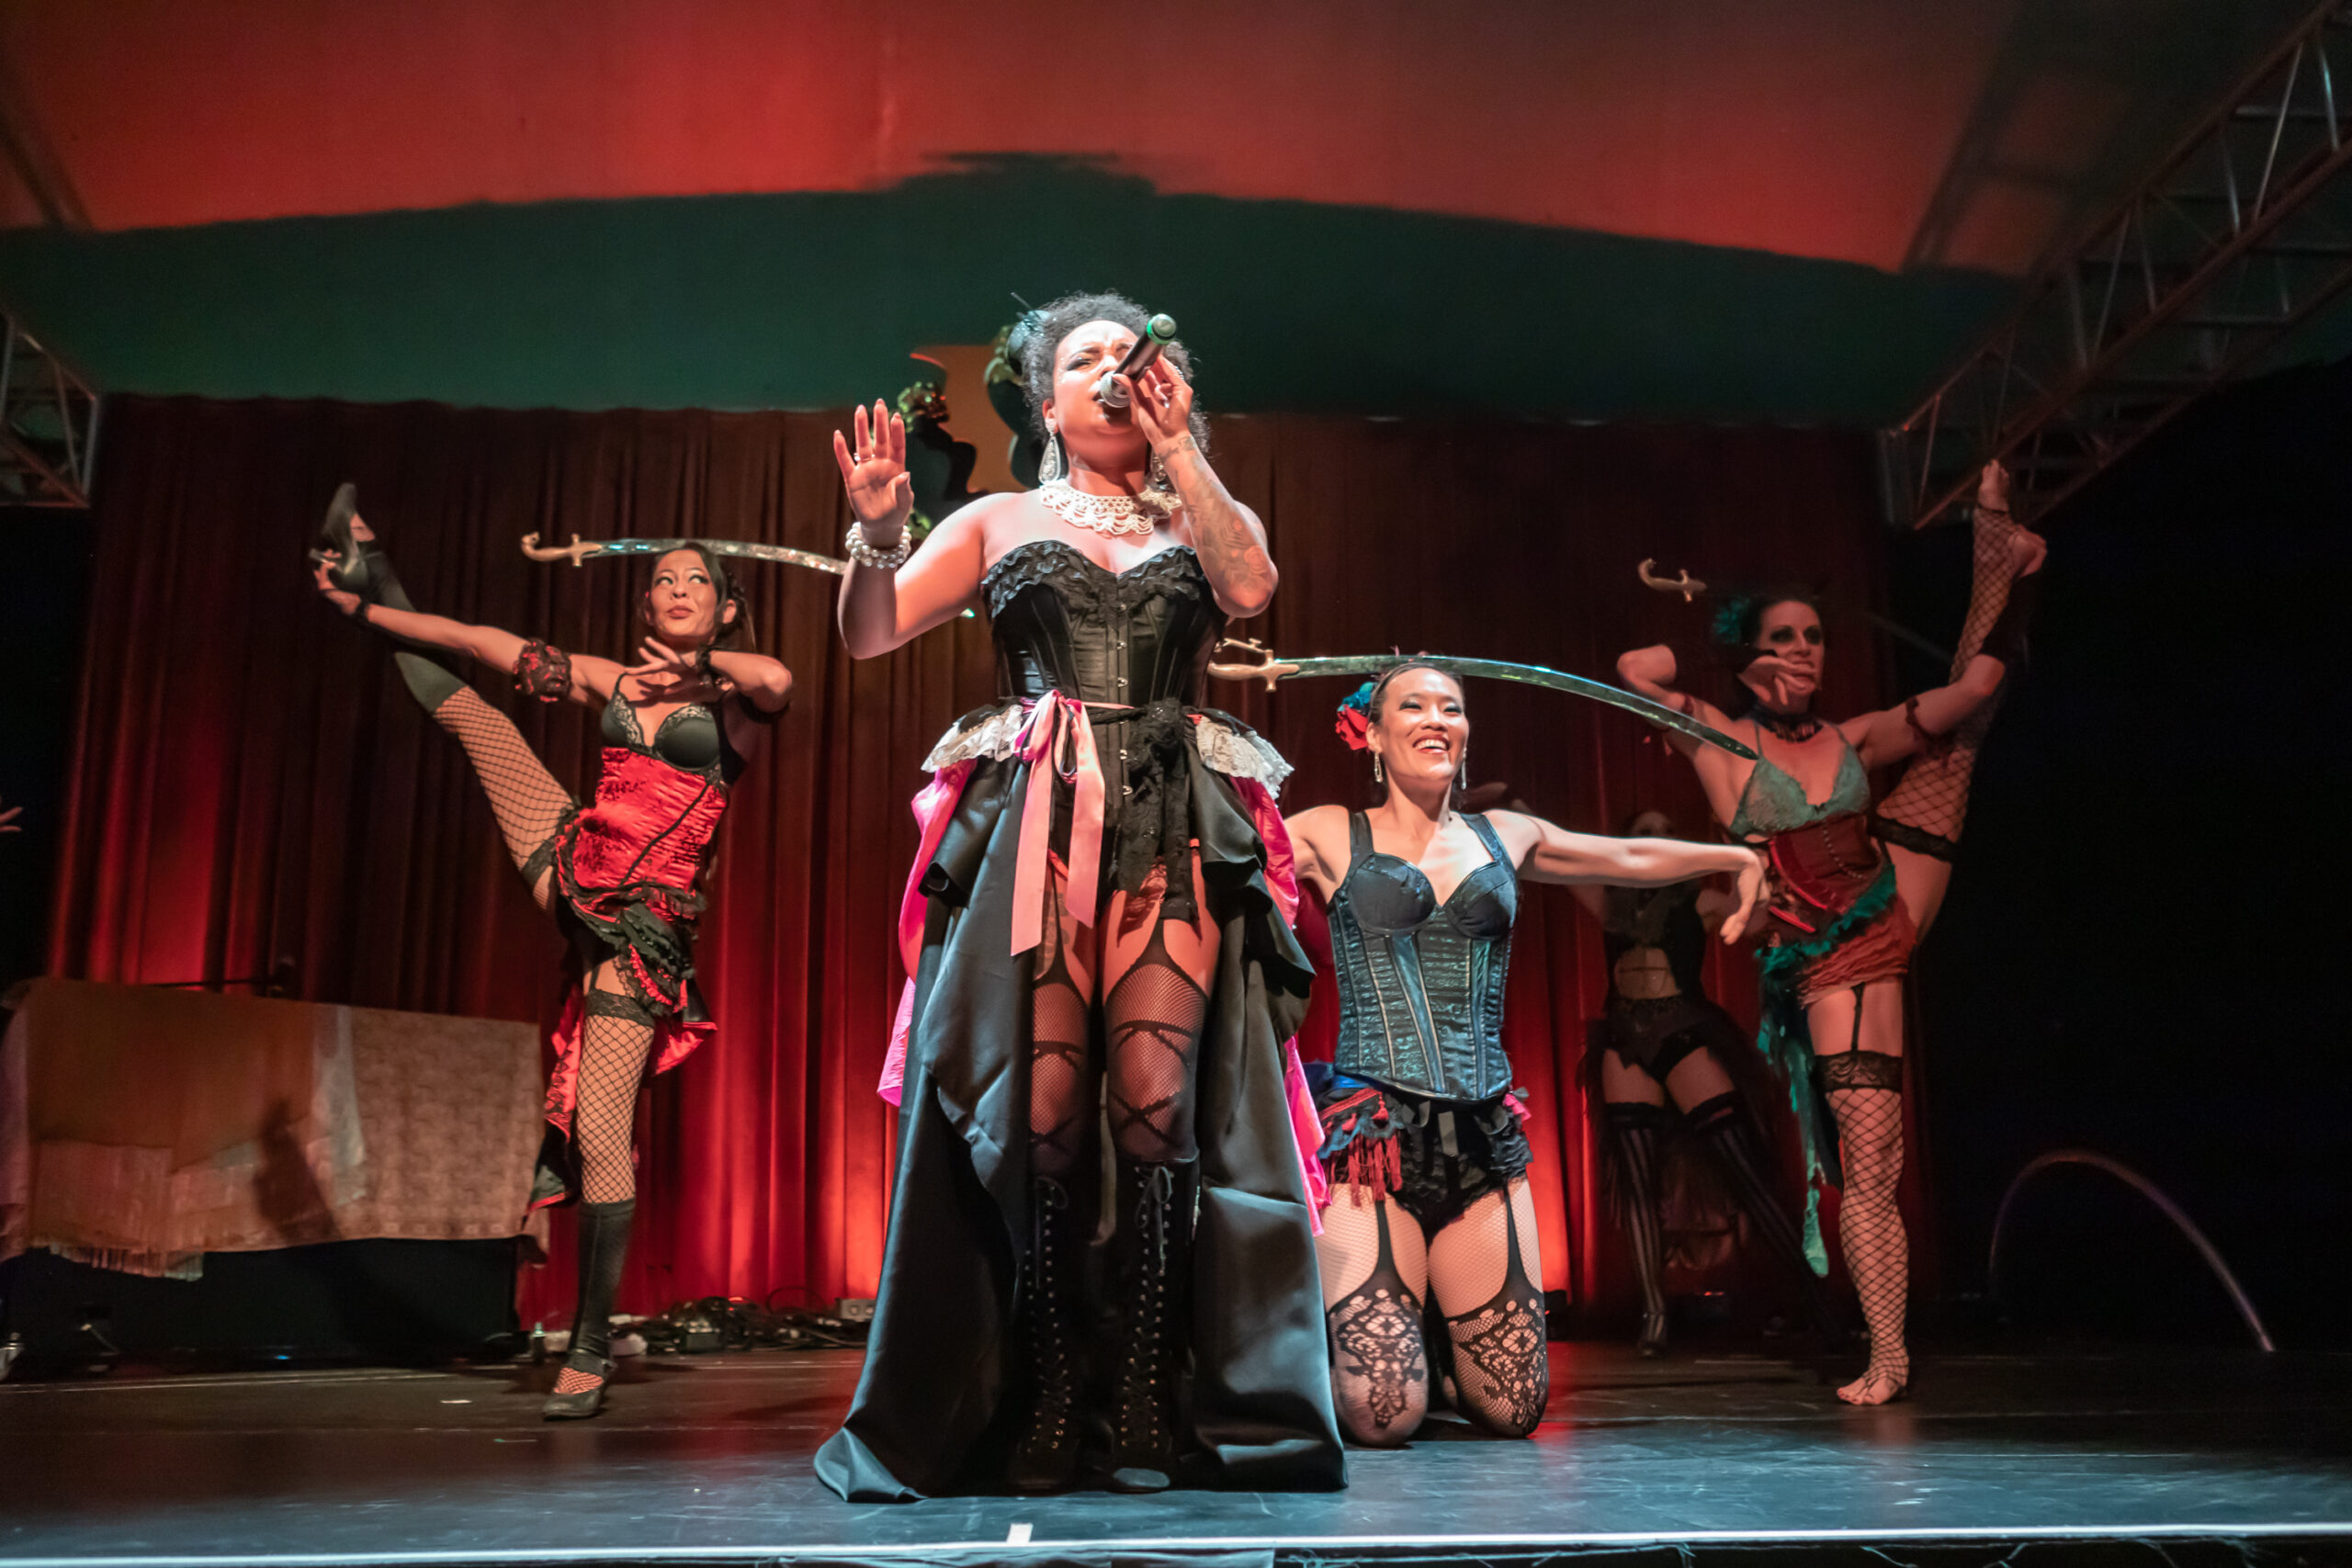 Image of Viveca Hawkins and Vau de Vire Society dancers performing at Vau de Vire's The Soiled Dove dinner theater Under the Tortona Big Top in Downtown Oakland